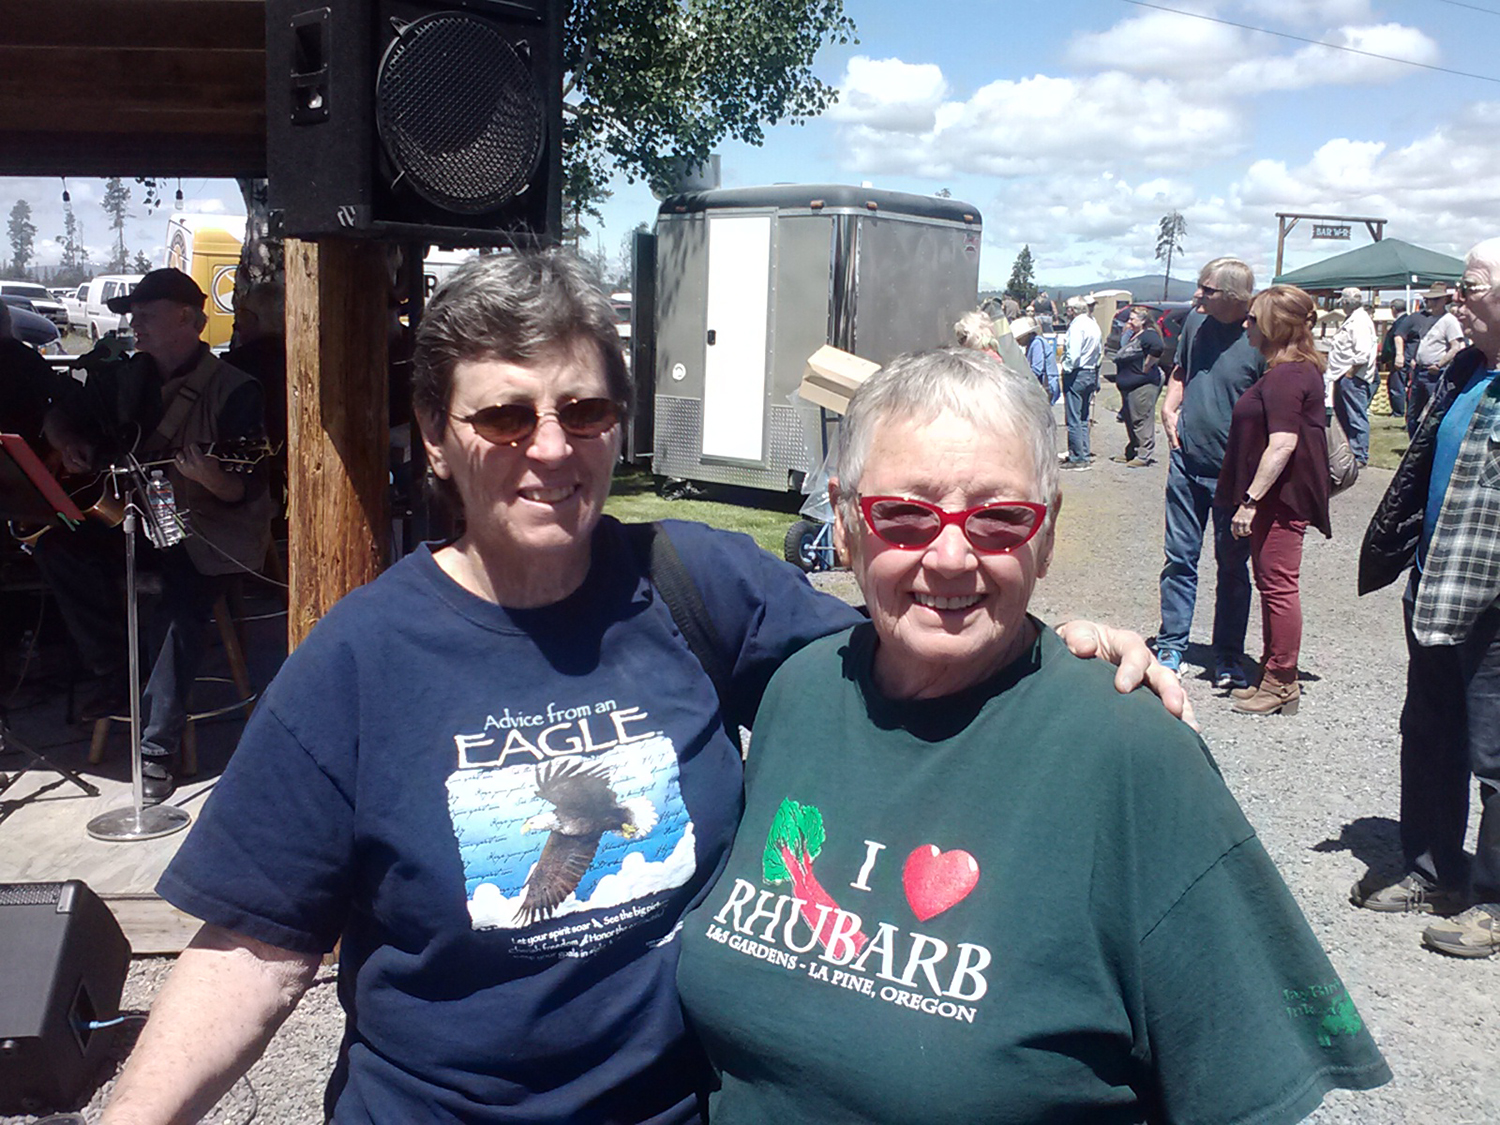 Rhubarb grower and rhubarb cookbook author Linda Stephenson, right, with a friend at the annual Rhubarb Festival in La Pine, Oregon.